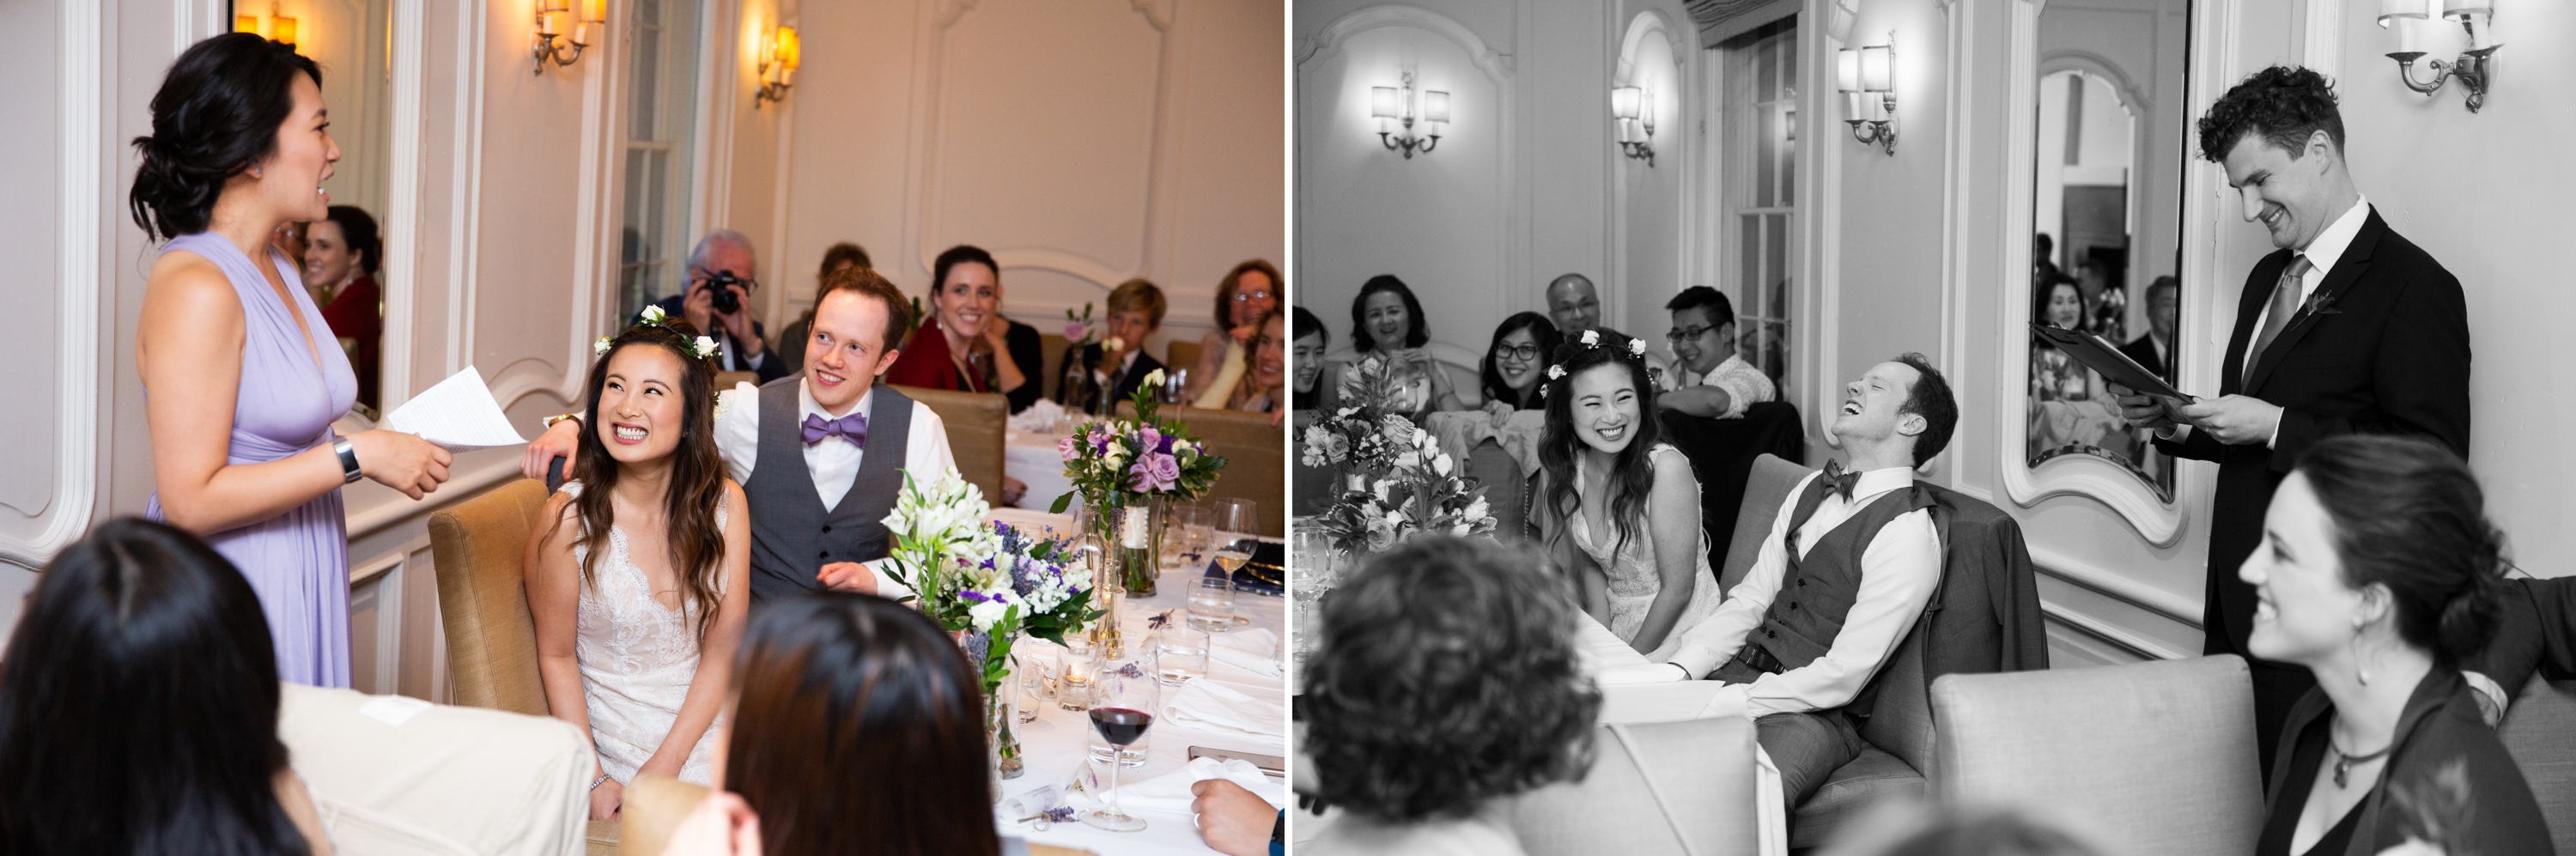 Speech Auberge Du Pommier Toronto Wedding Zsuzsi Pal Photography